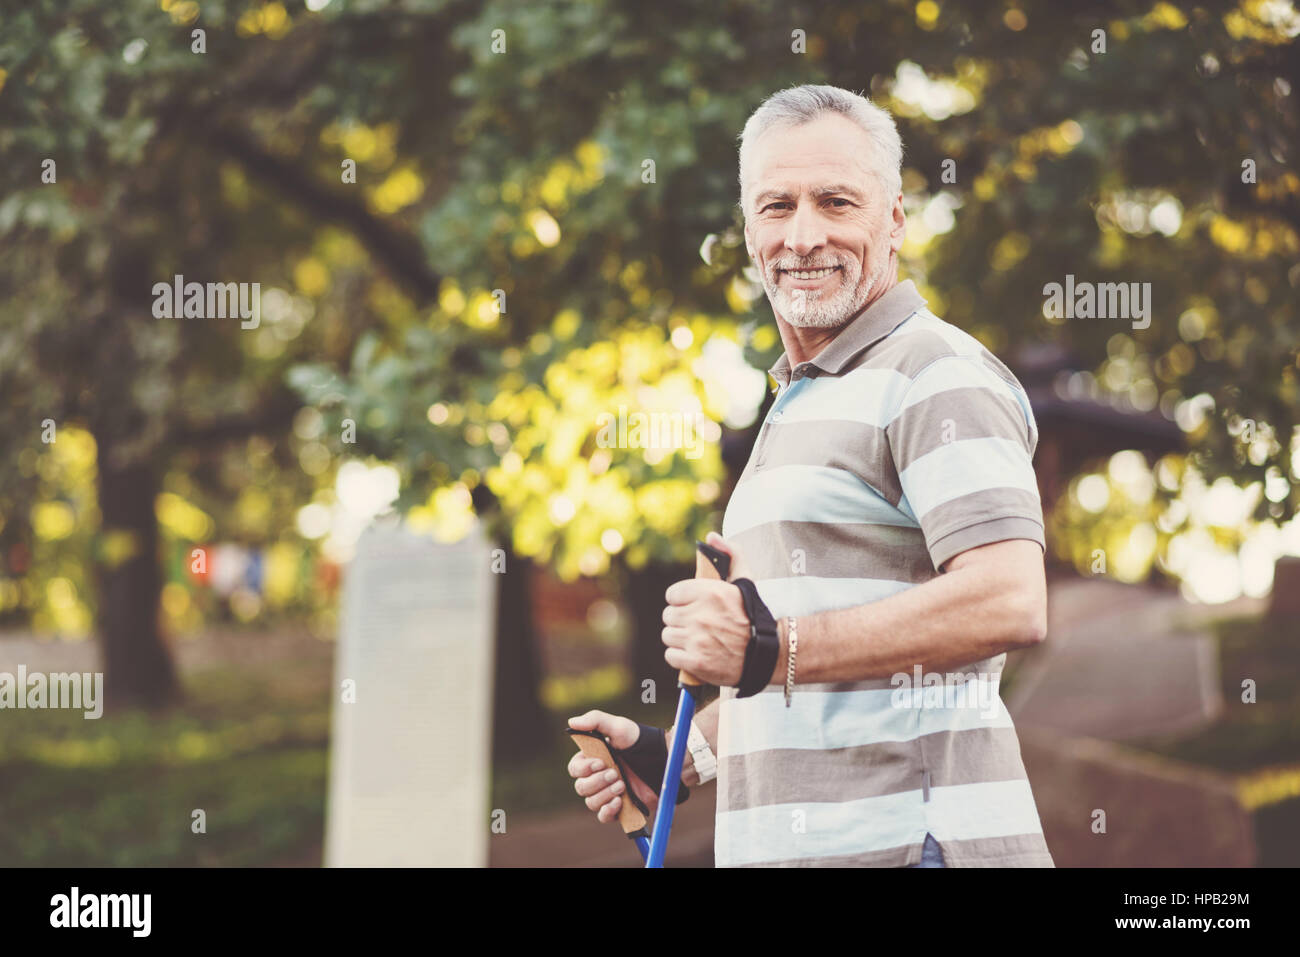 No Payments Seniors Online Dating Services